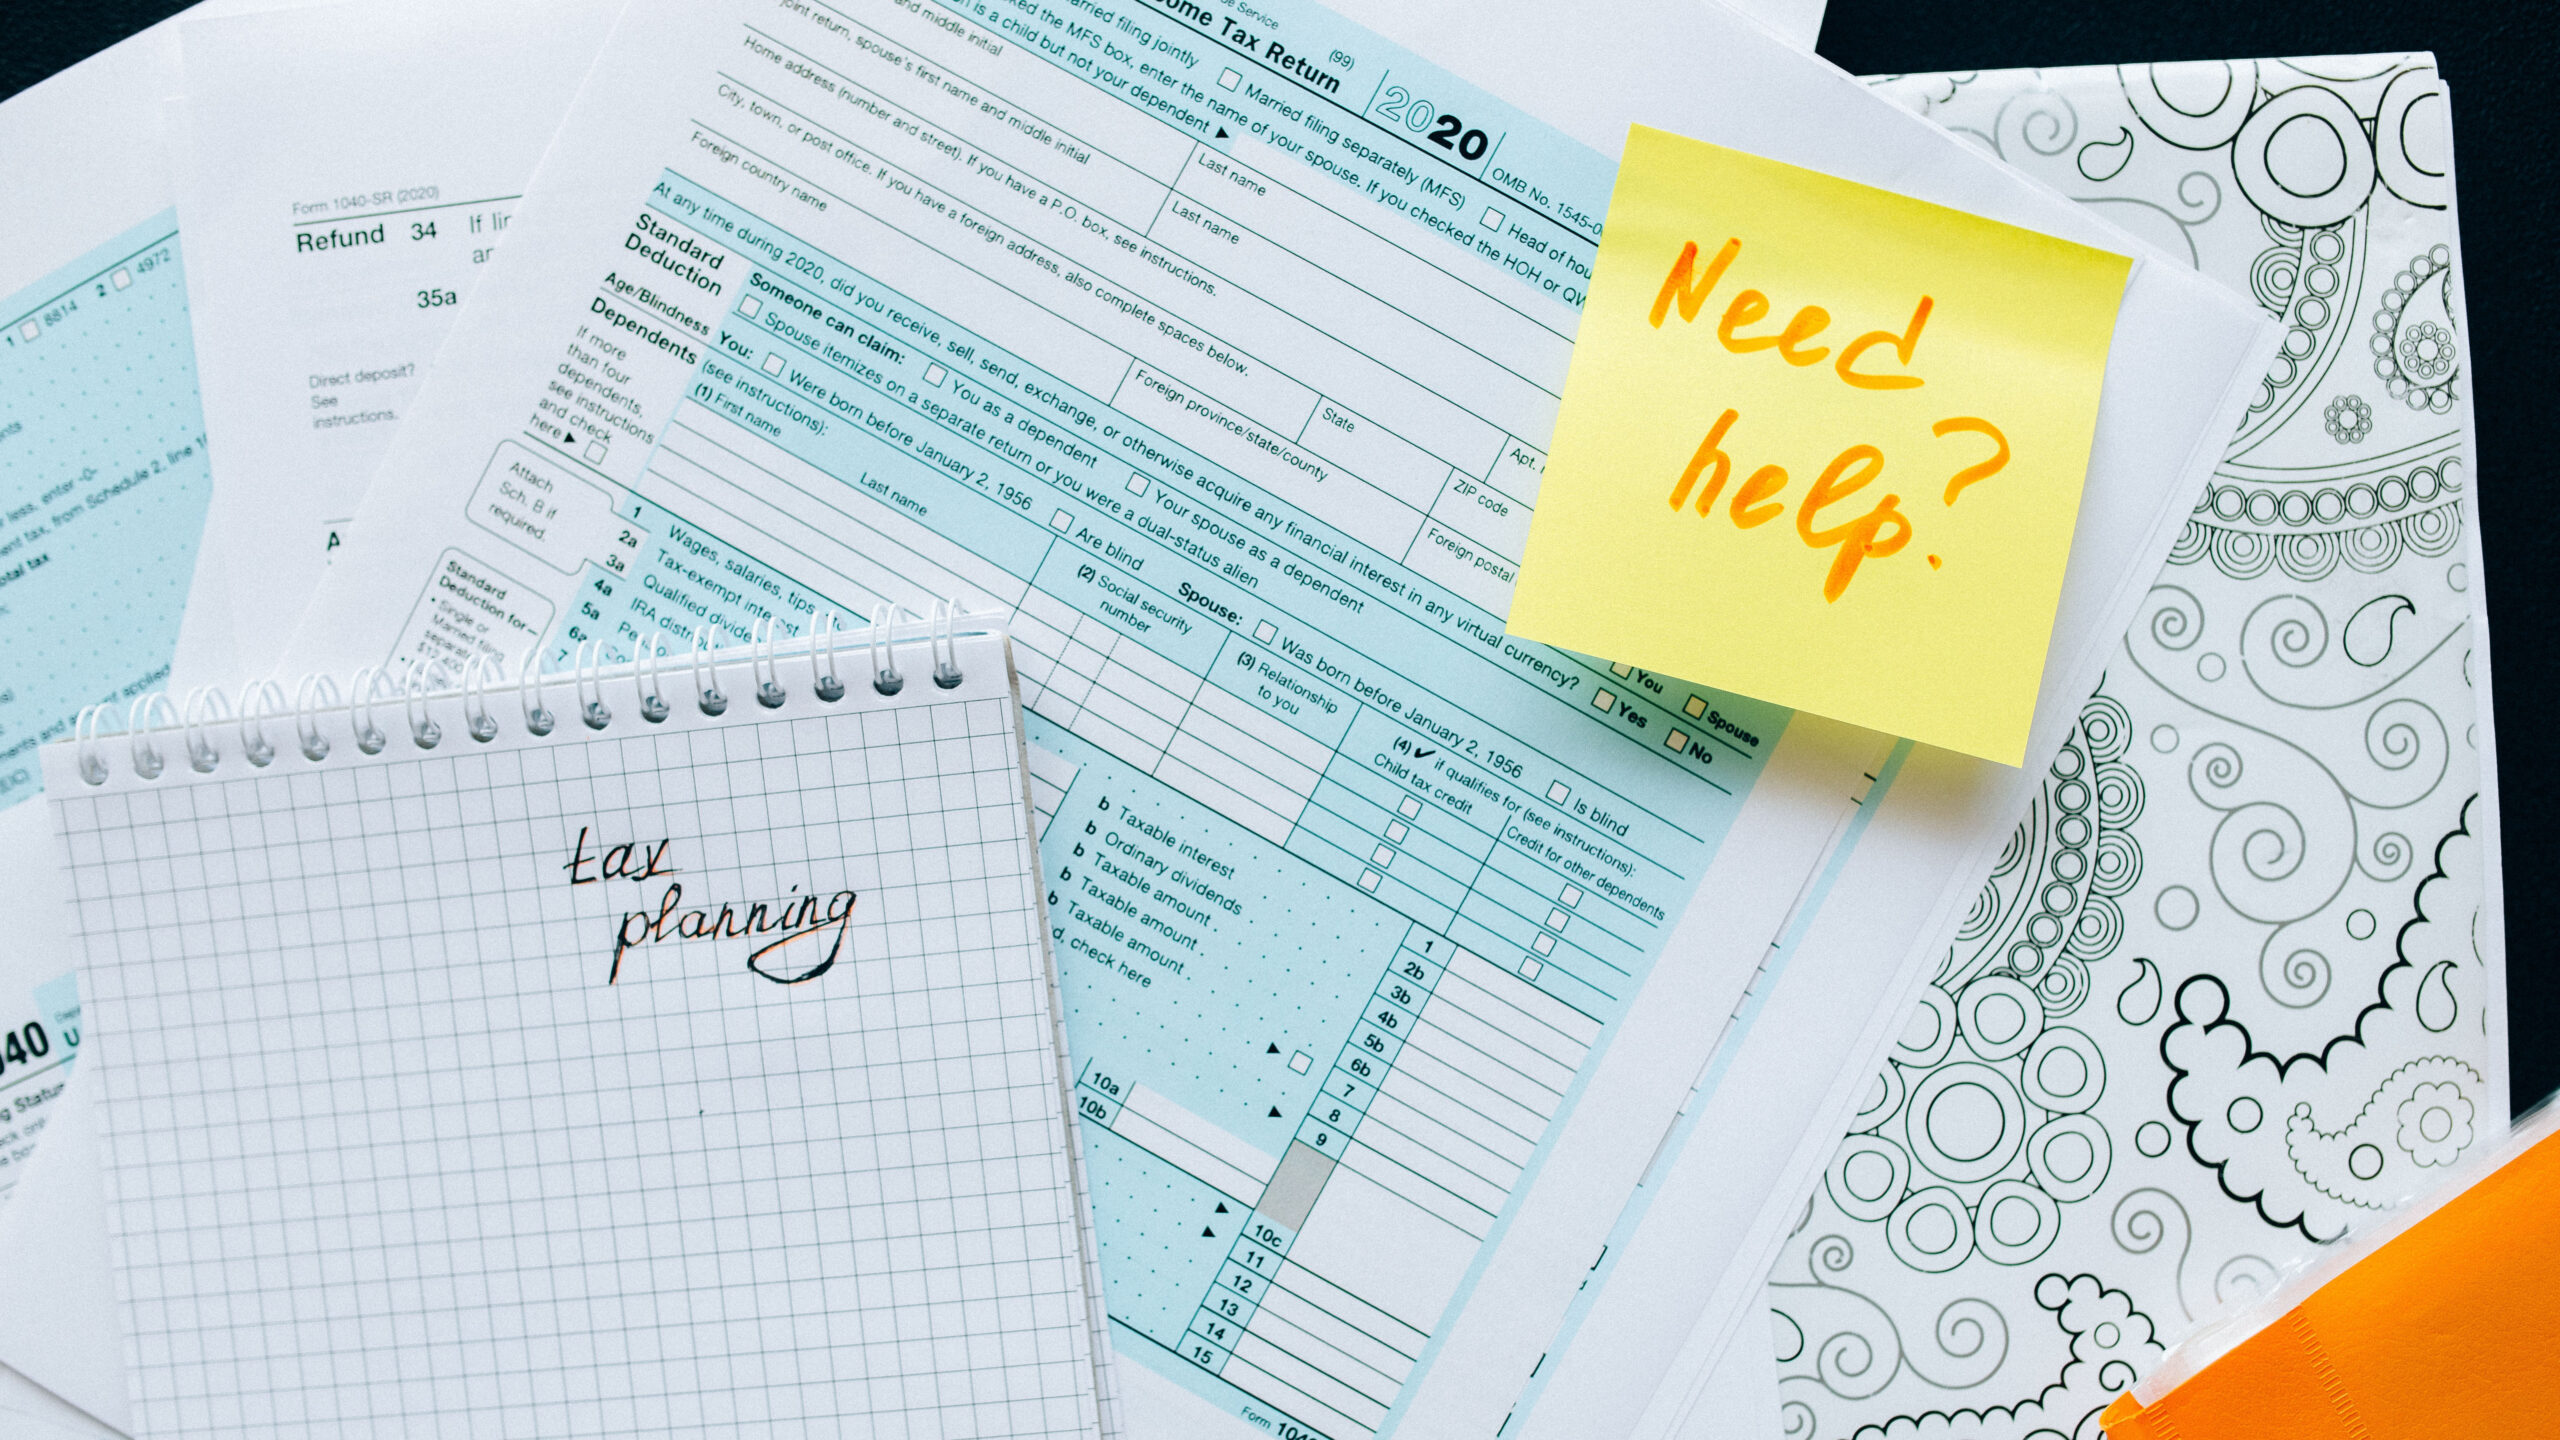 """Canadian tax forms with notes reading """"Need help?"""" and """"Tax planning"""". In the background there is a decorative, paisley doodle."""